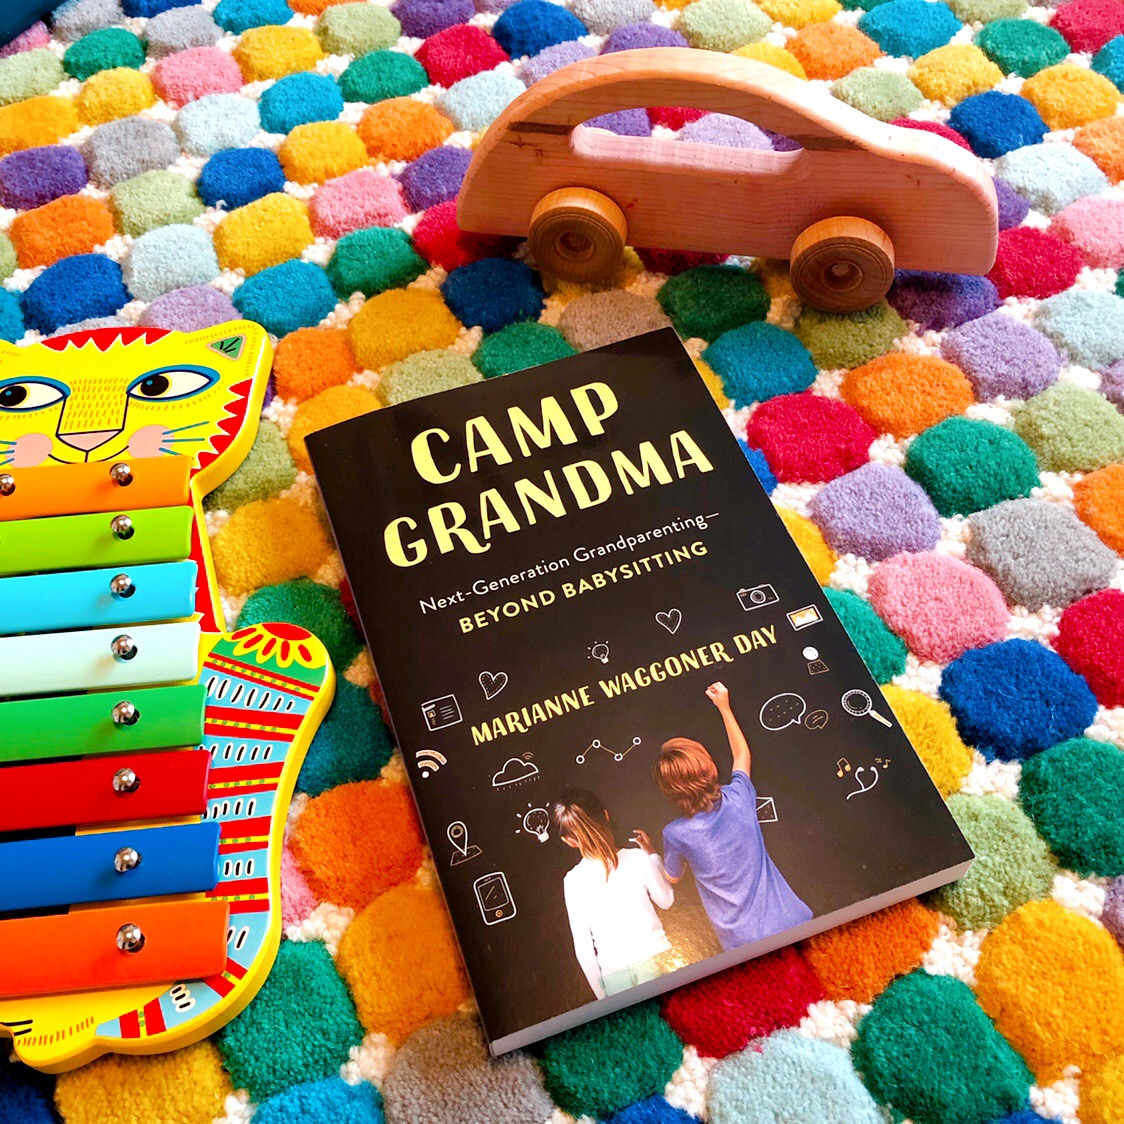 Camp Grandma by Marianne Waggoner Day. Book review by Jessica Mack on BrownPaperBunny